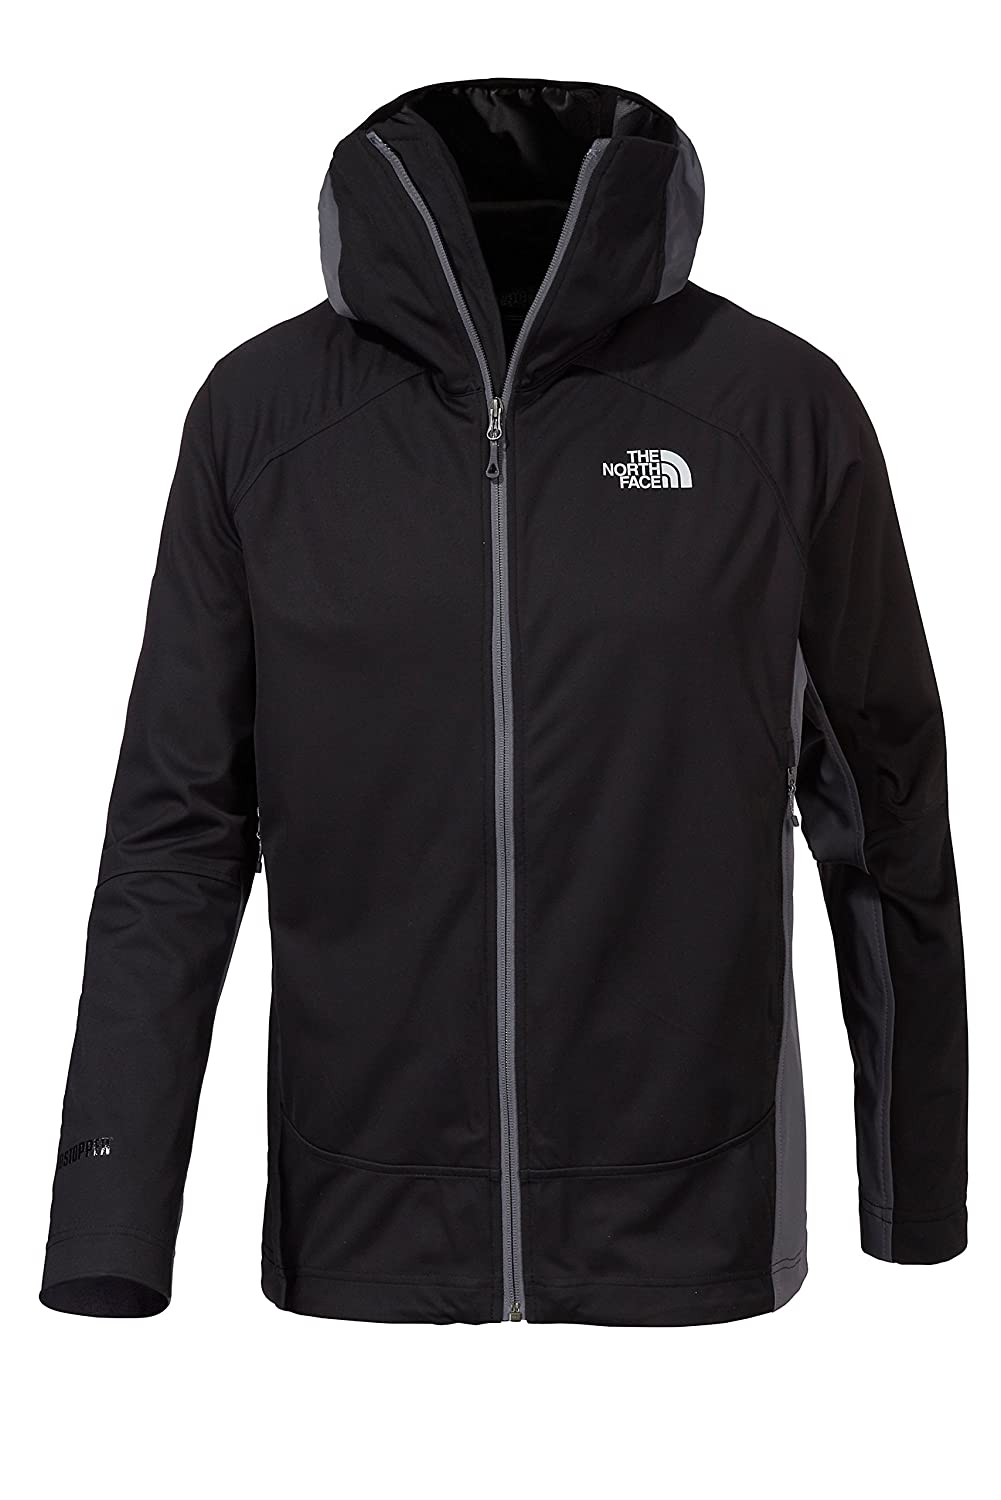 THE NORTH FACE Herren Softshelljacke Alpine Project Hybrid Hoodie